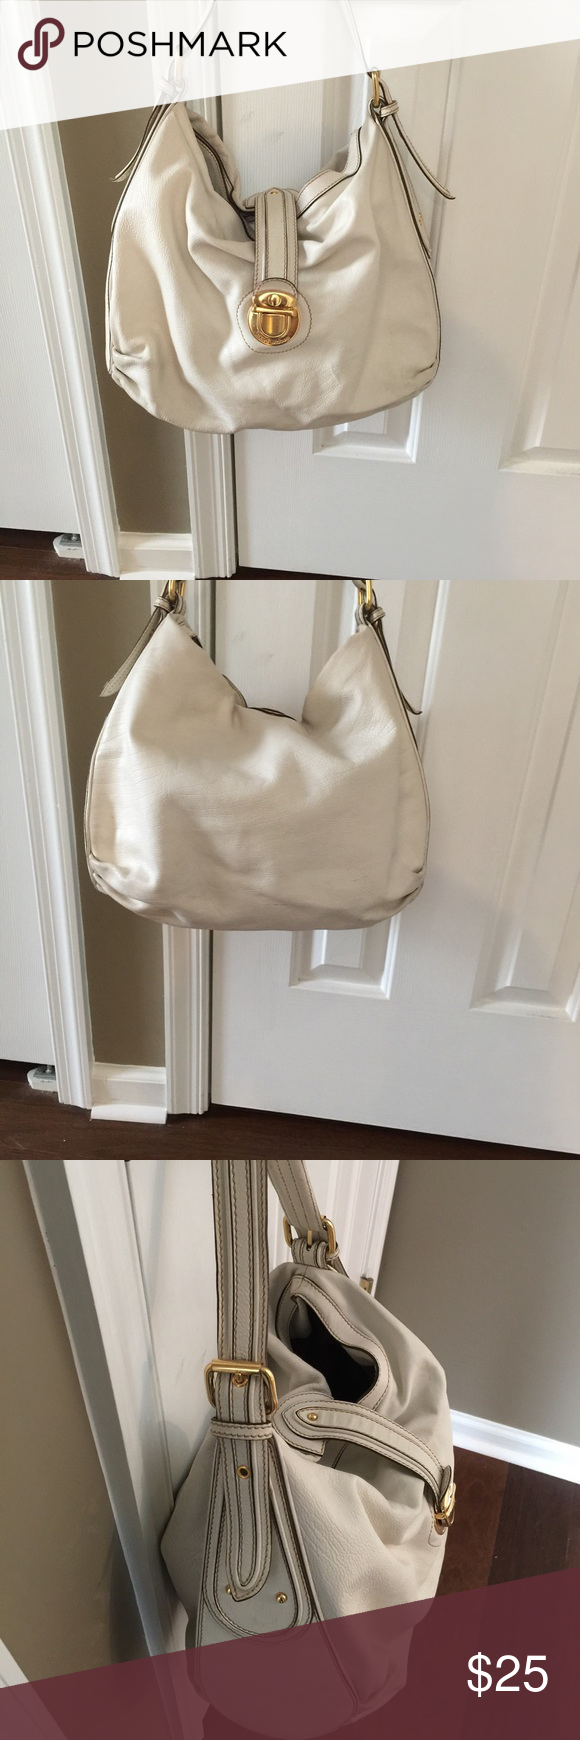 White leather Marc Jacob bag Comes with dust bag - used Marc Jacobs Bags Shoulder Bags